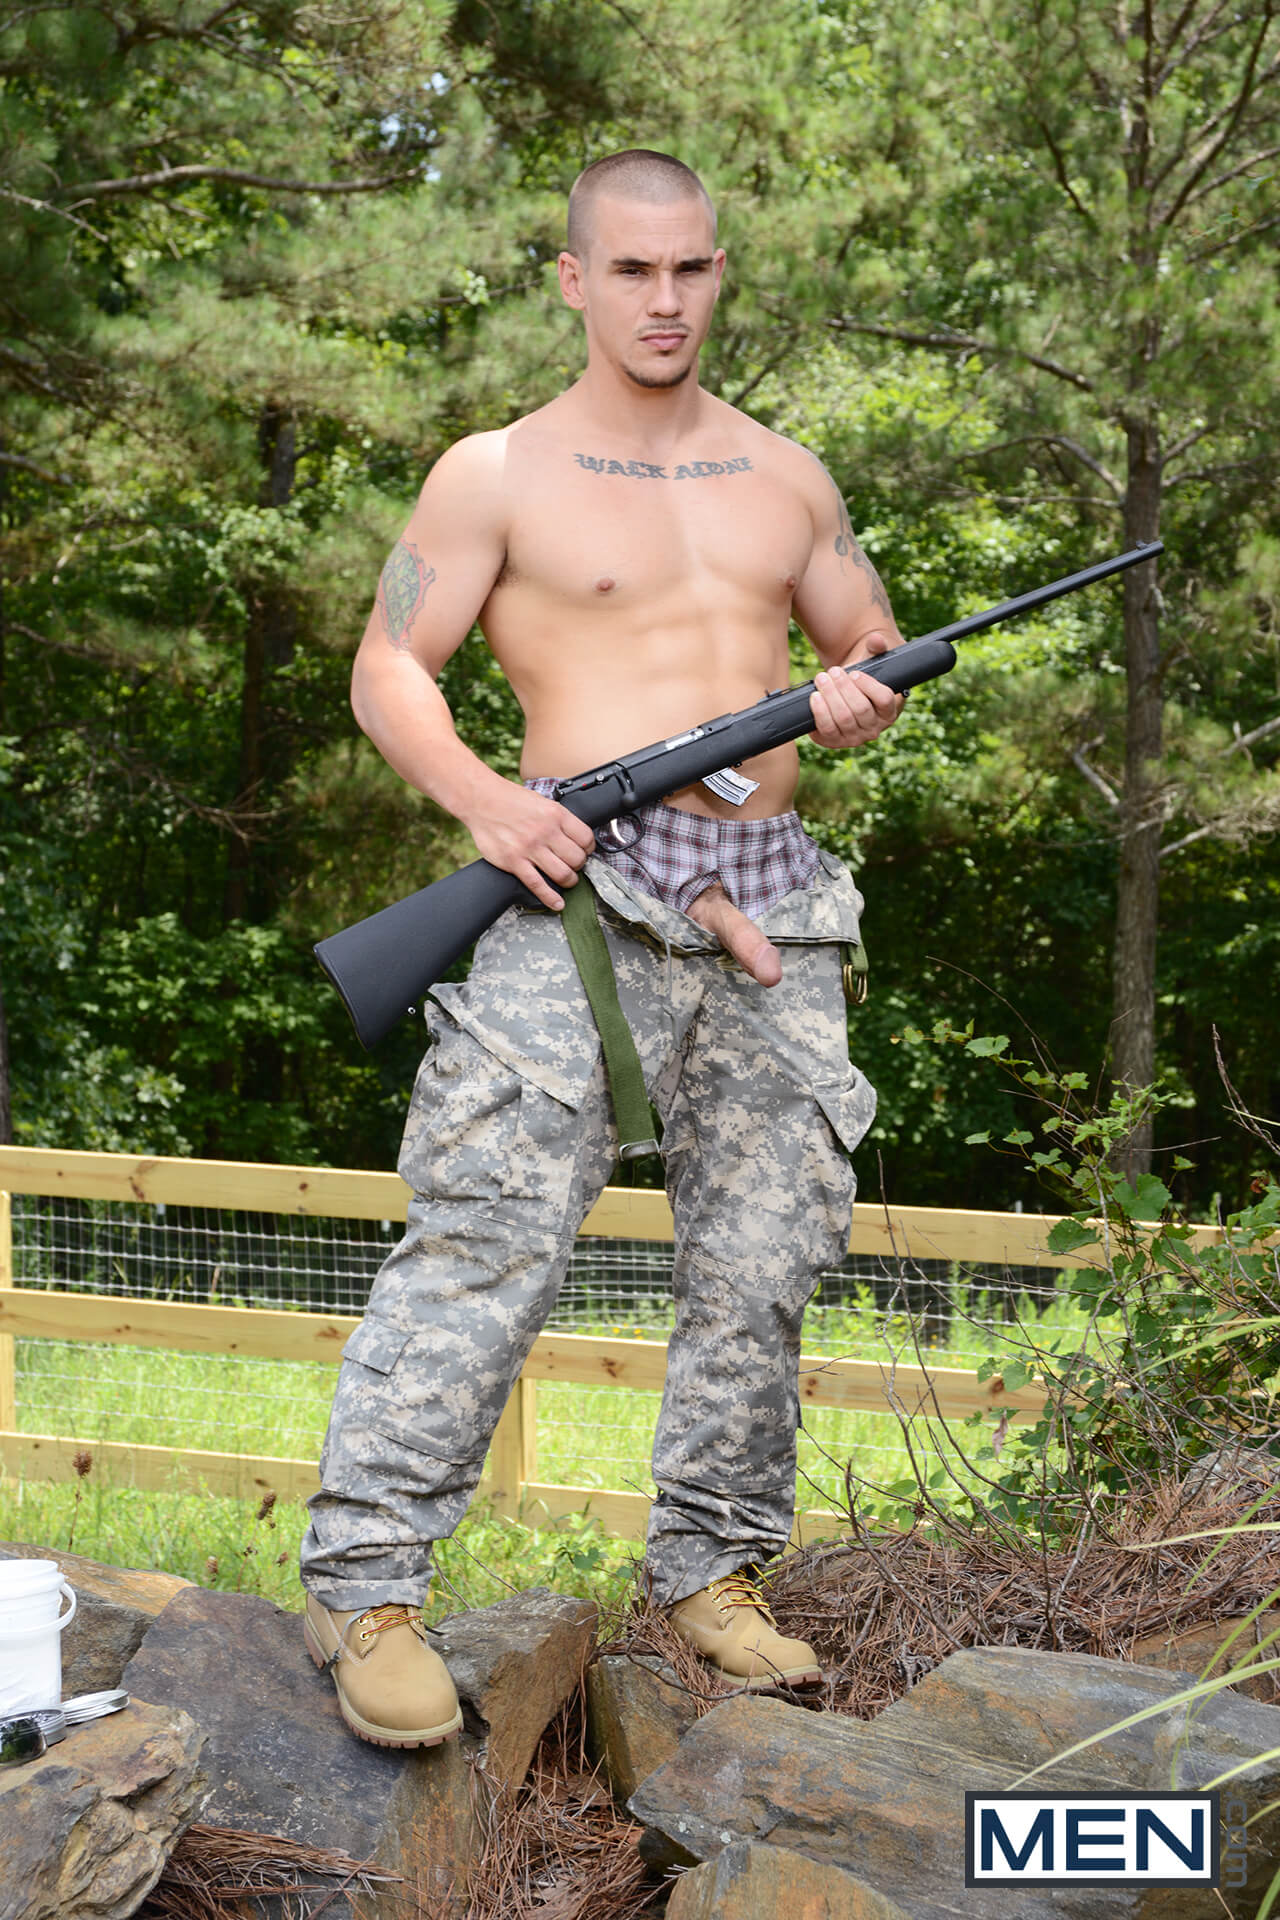 men drill my hole the hunt part 2 adam bryant paul canon gay porn blog image 5